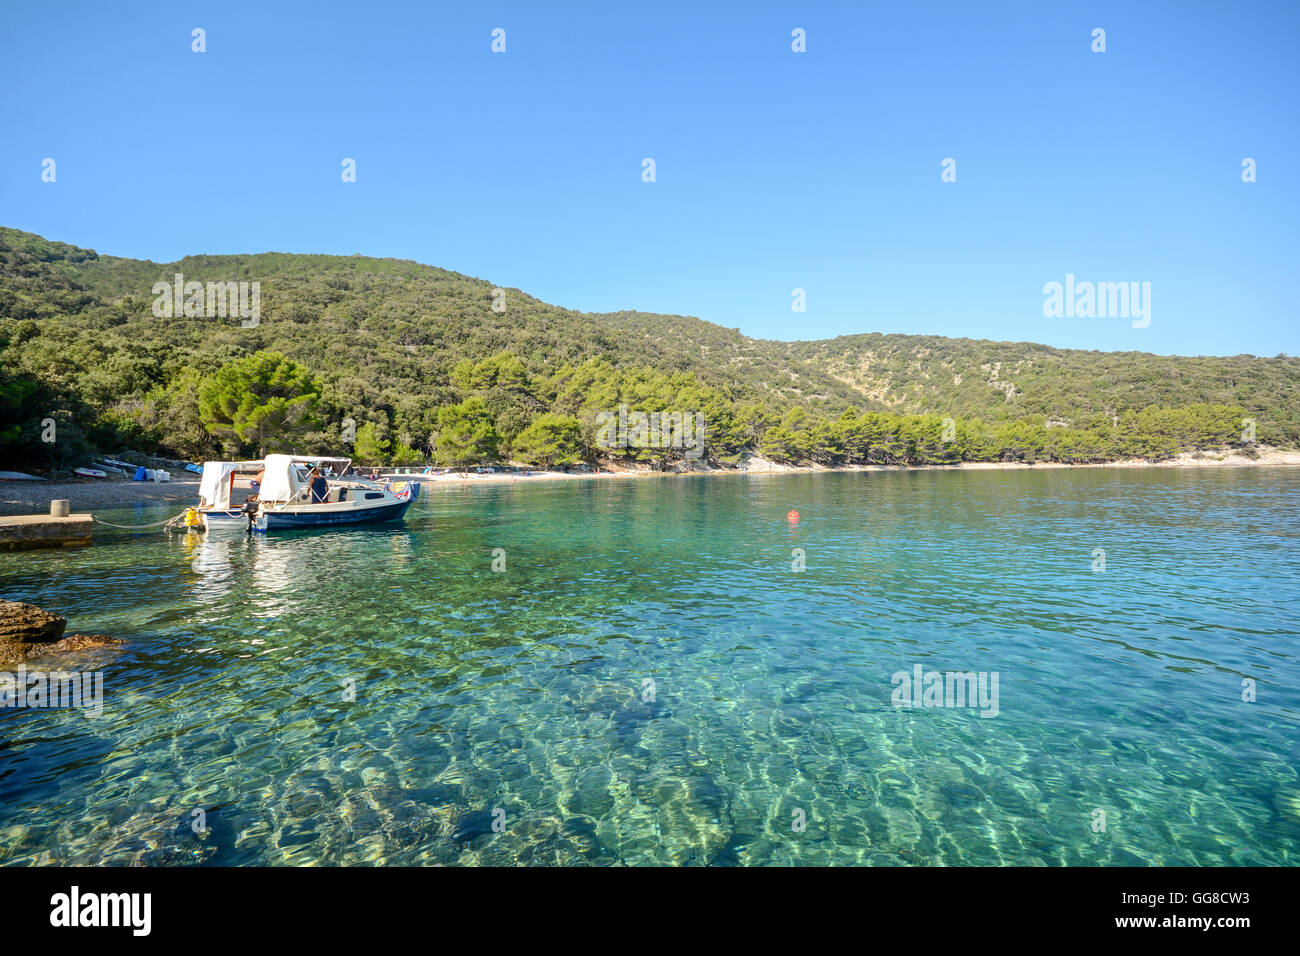 Cres Island: Beach near Valun village, Istrian coast on the Adriatic sea, Croatia Europe Stock Photo